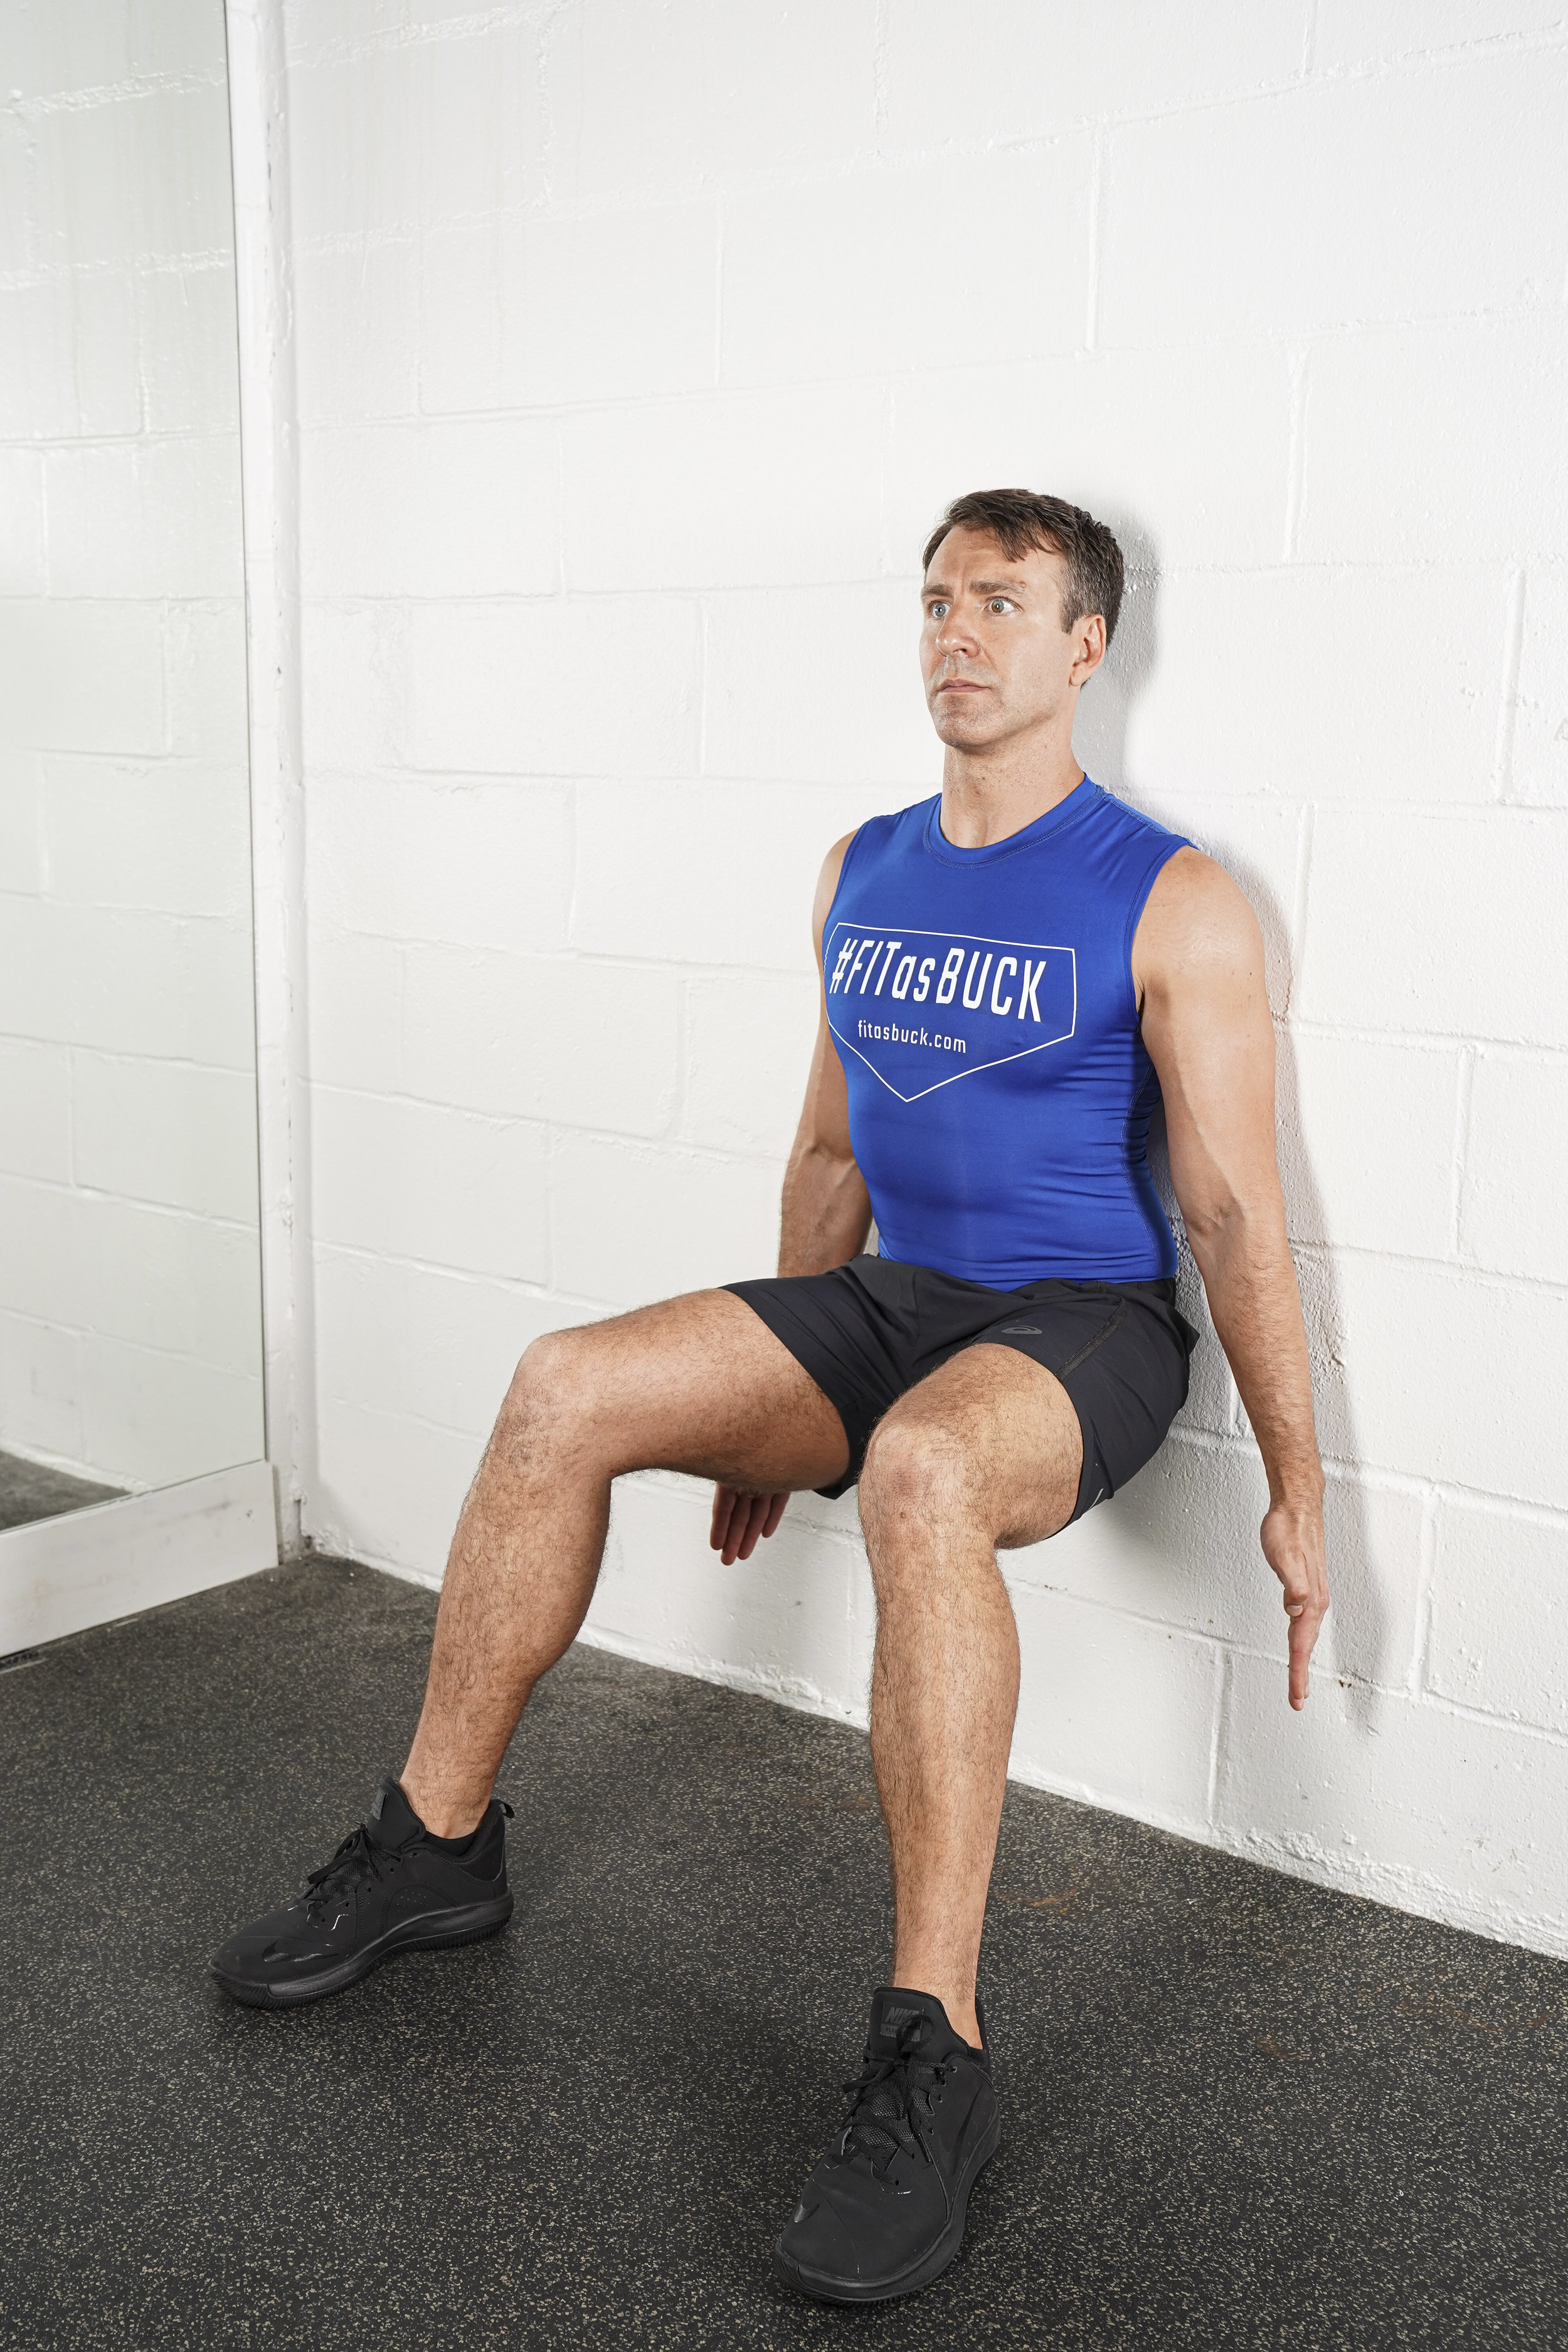 Wall Squat Hold - - DURATION: 30 secondsNotes:Be sure feet are out far enough in front of body that knees are not over your toes.